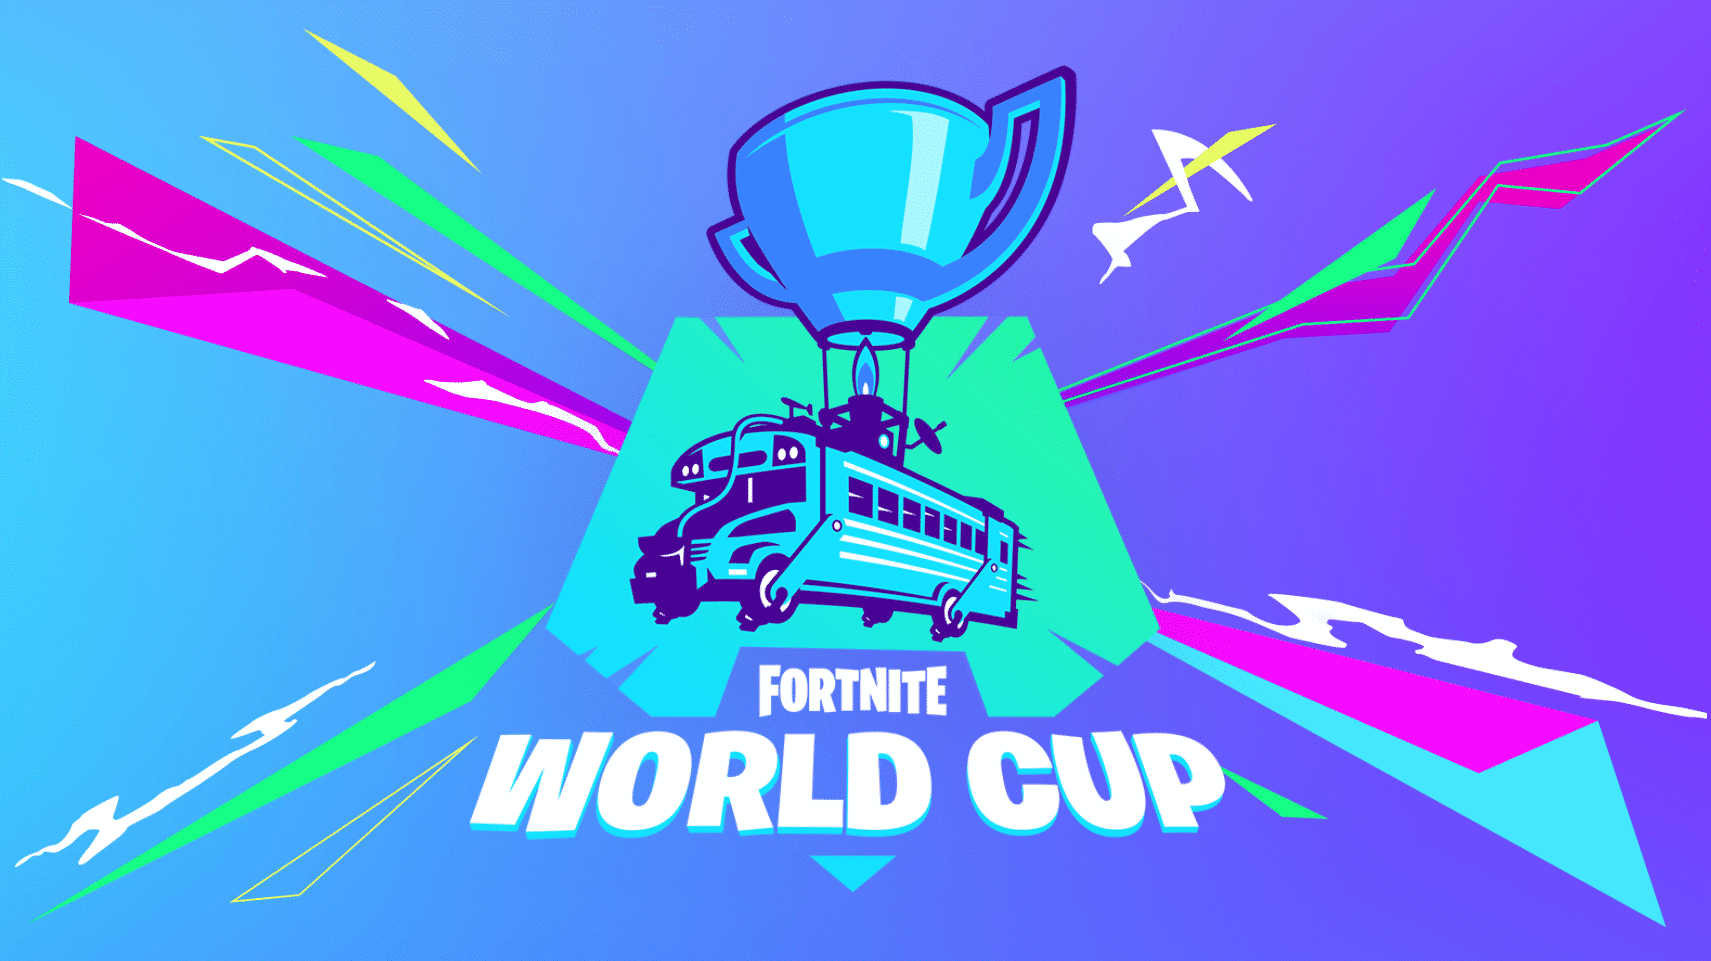 Epic Games sperrt 1200 Spieler beim Fortnite World Cup